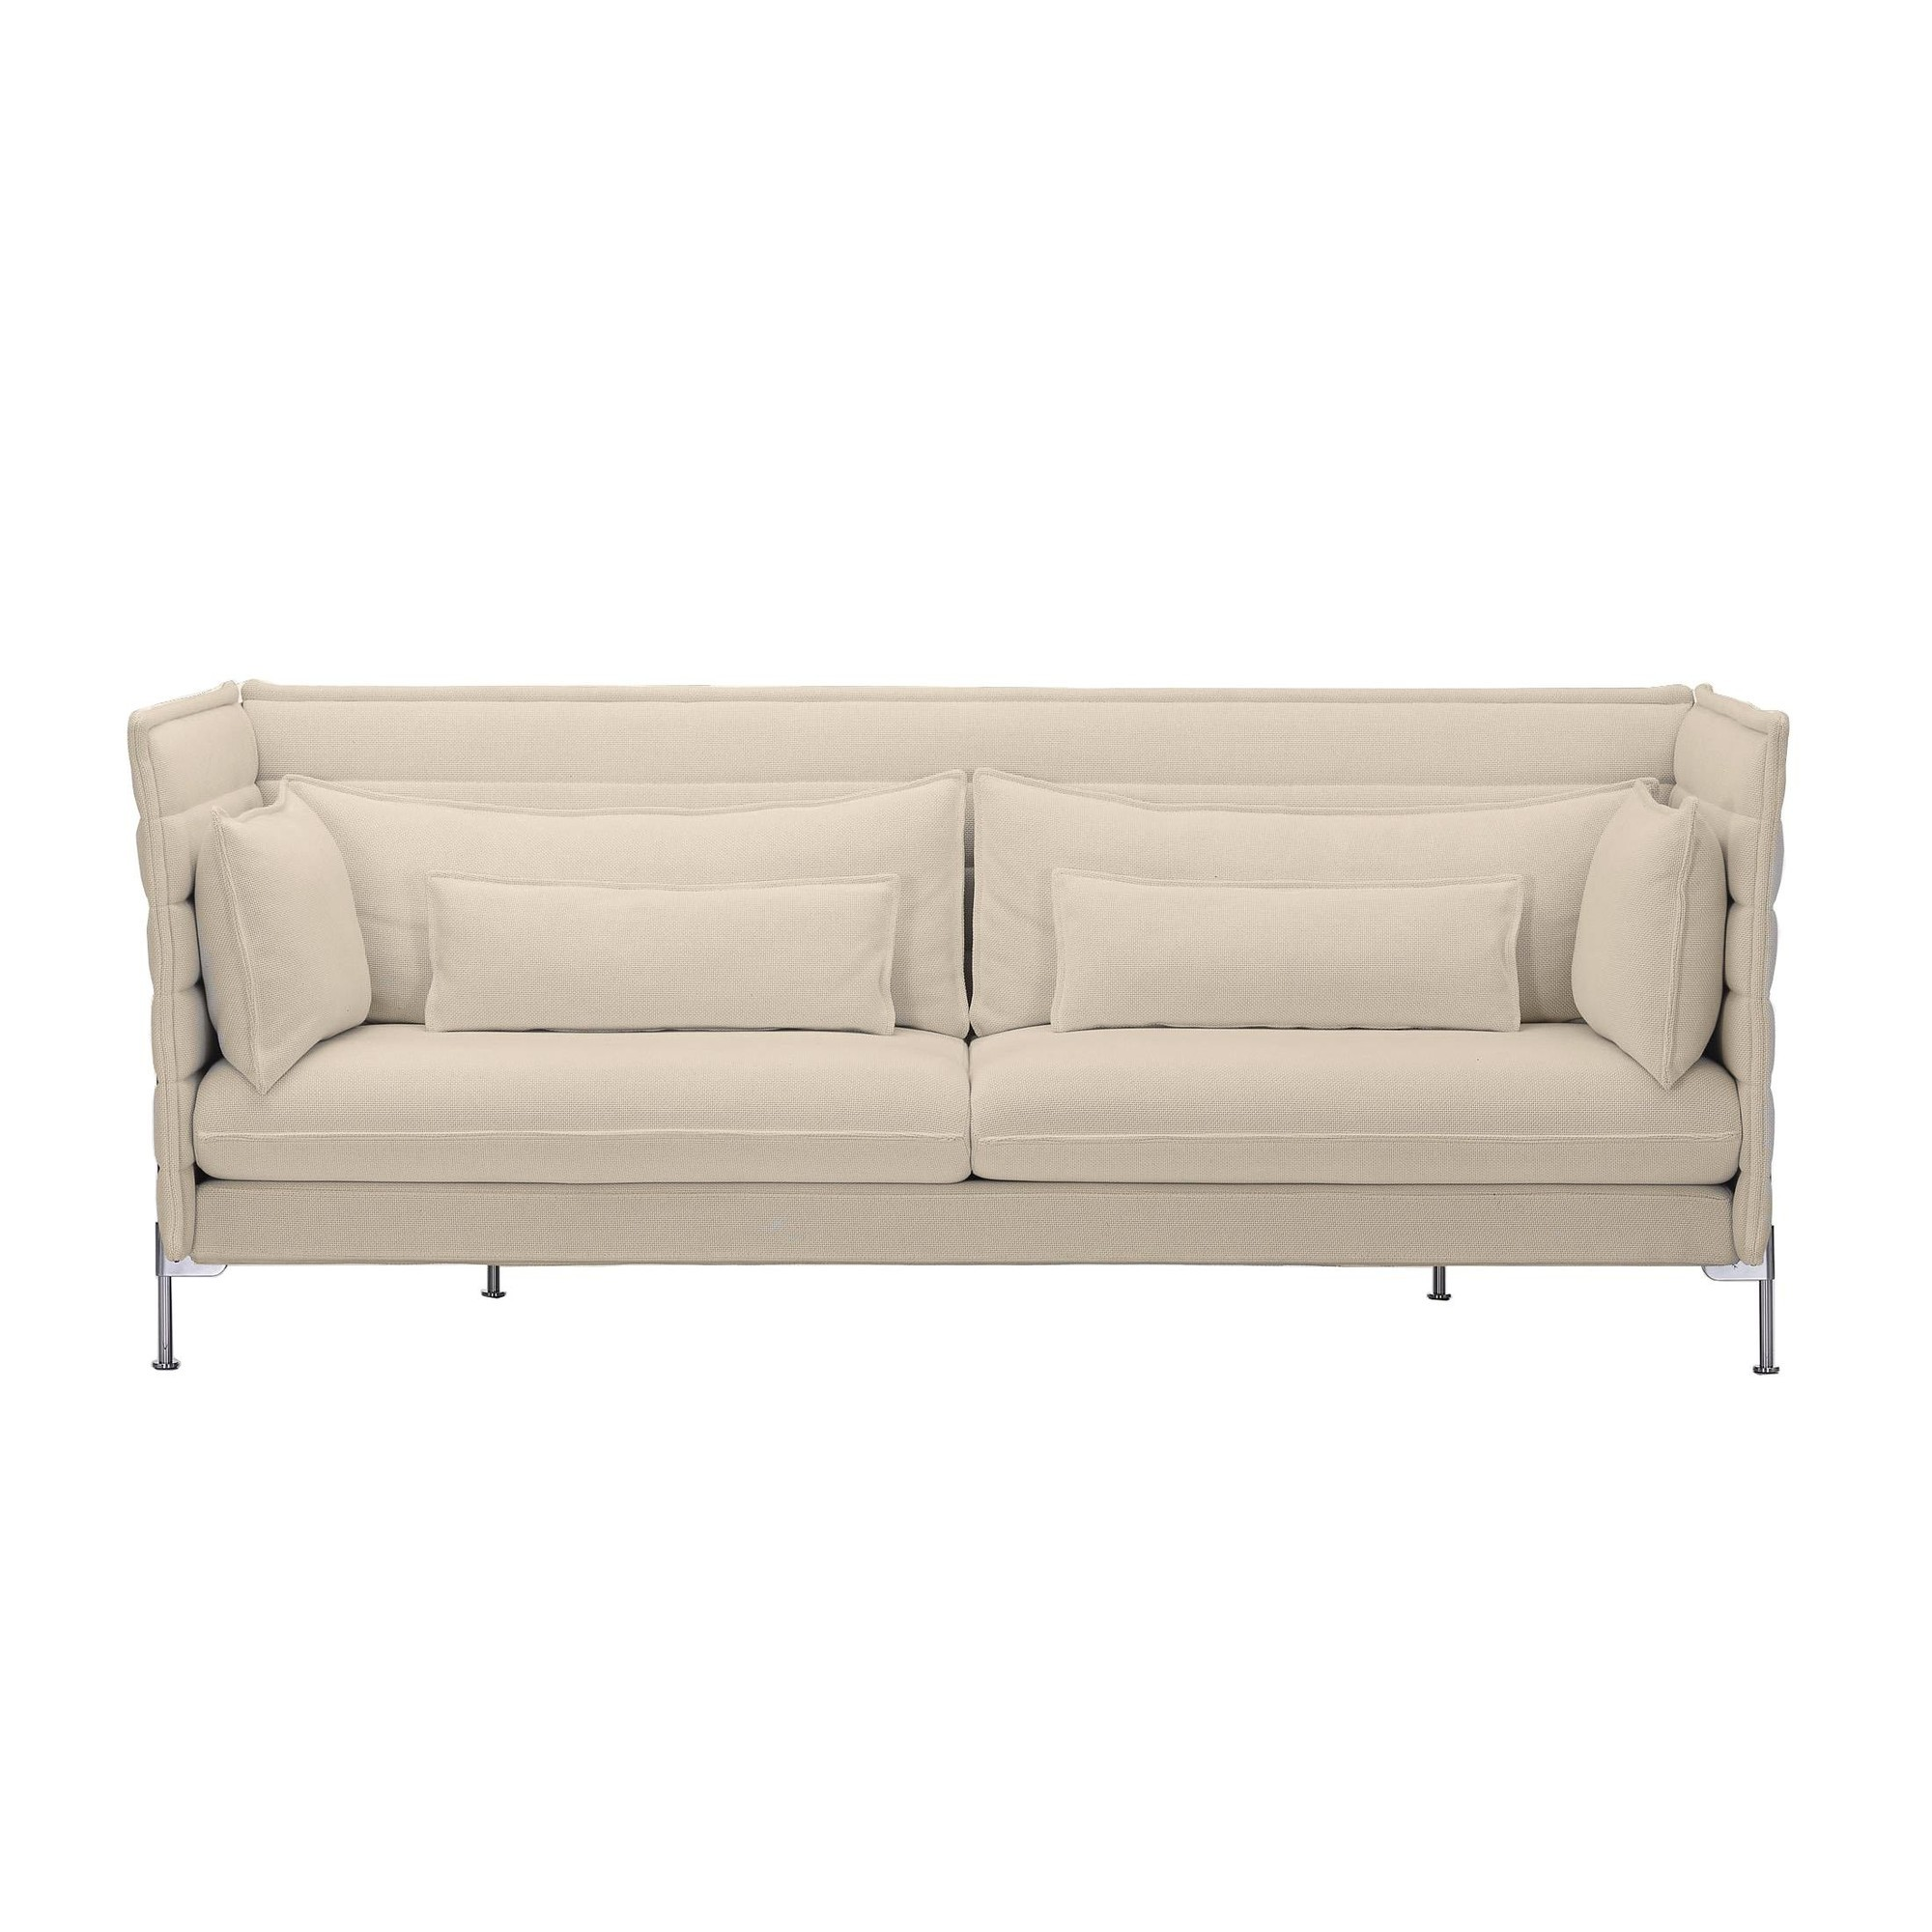 Vitra Alcove Bouroullec 3 Seater Sofa Ivory Frame Chrome Fabric Laser